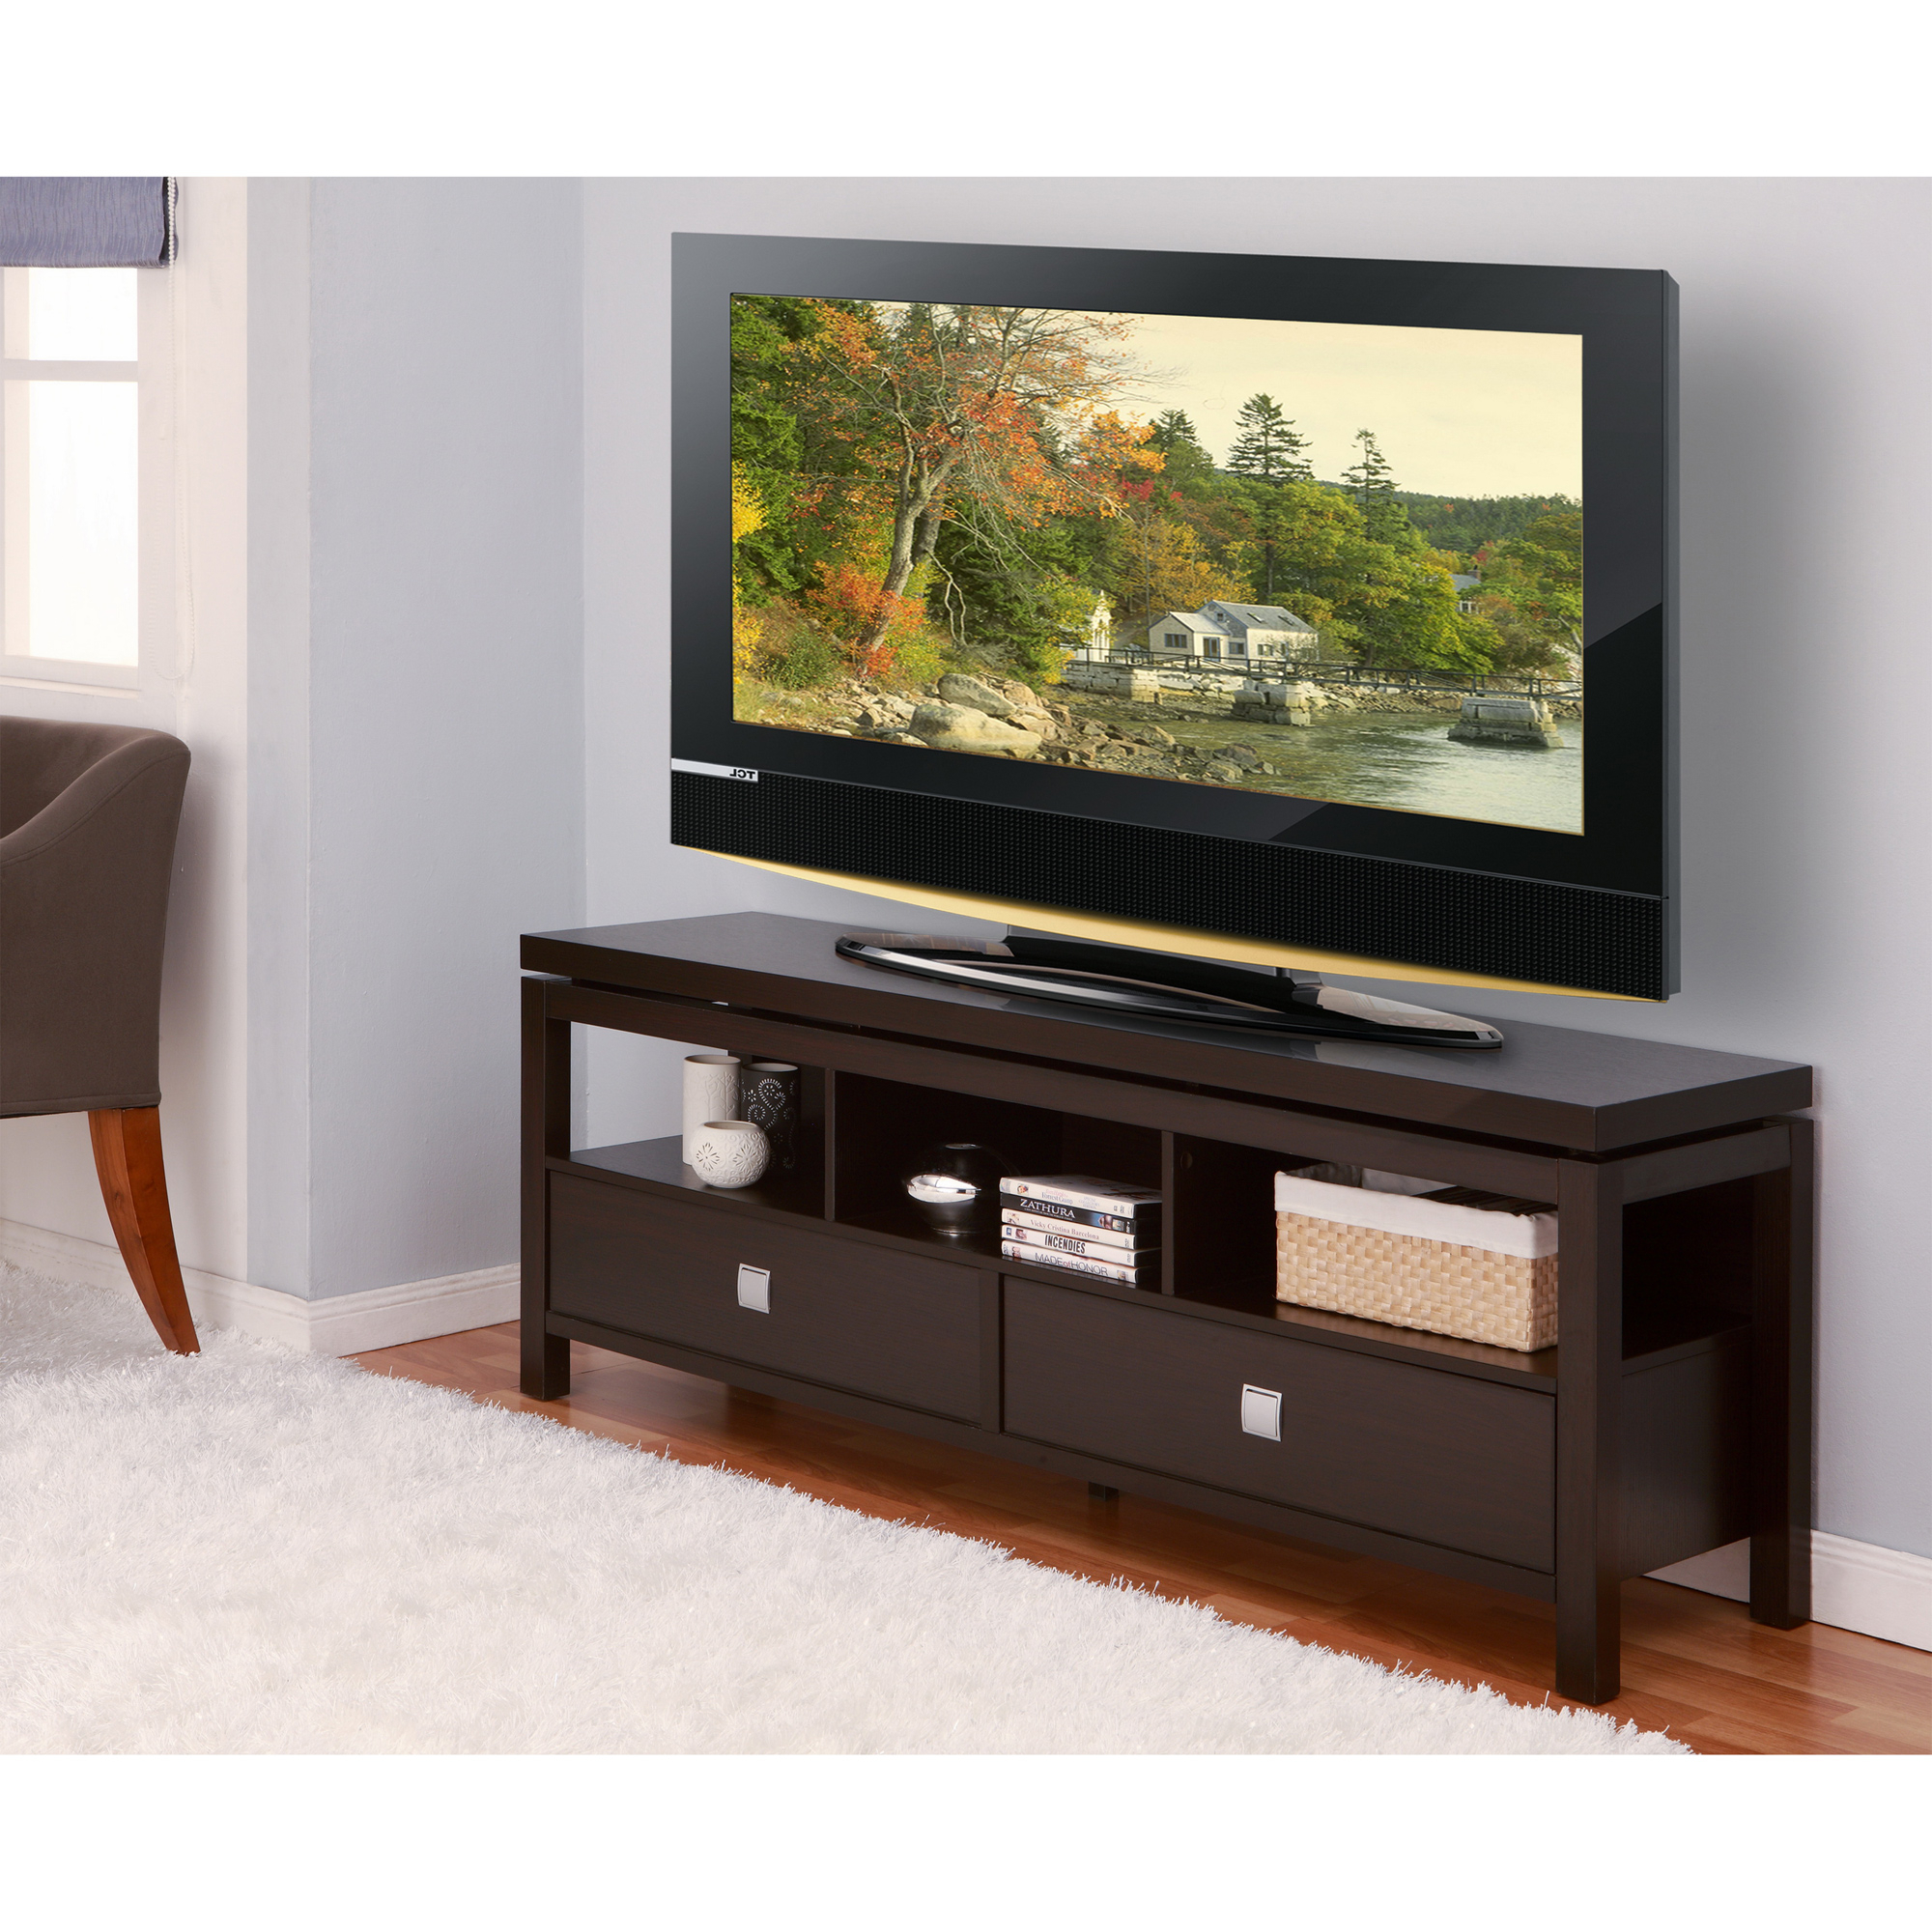 Best Tv Stands Review 65 Inch Stand White 44 50 Walmart Costco Wall for Oxford 70 Inch Tv Stands (Image 2 of 30)